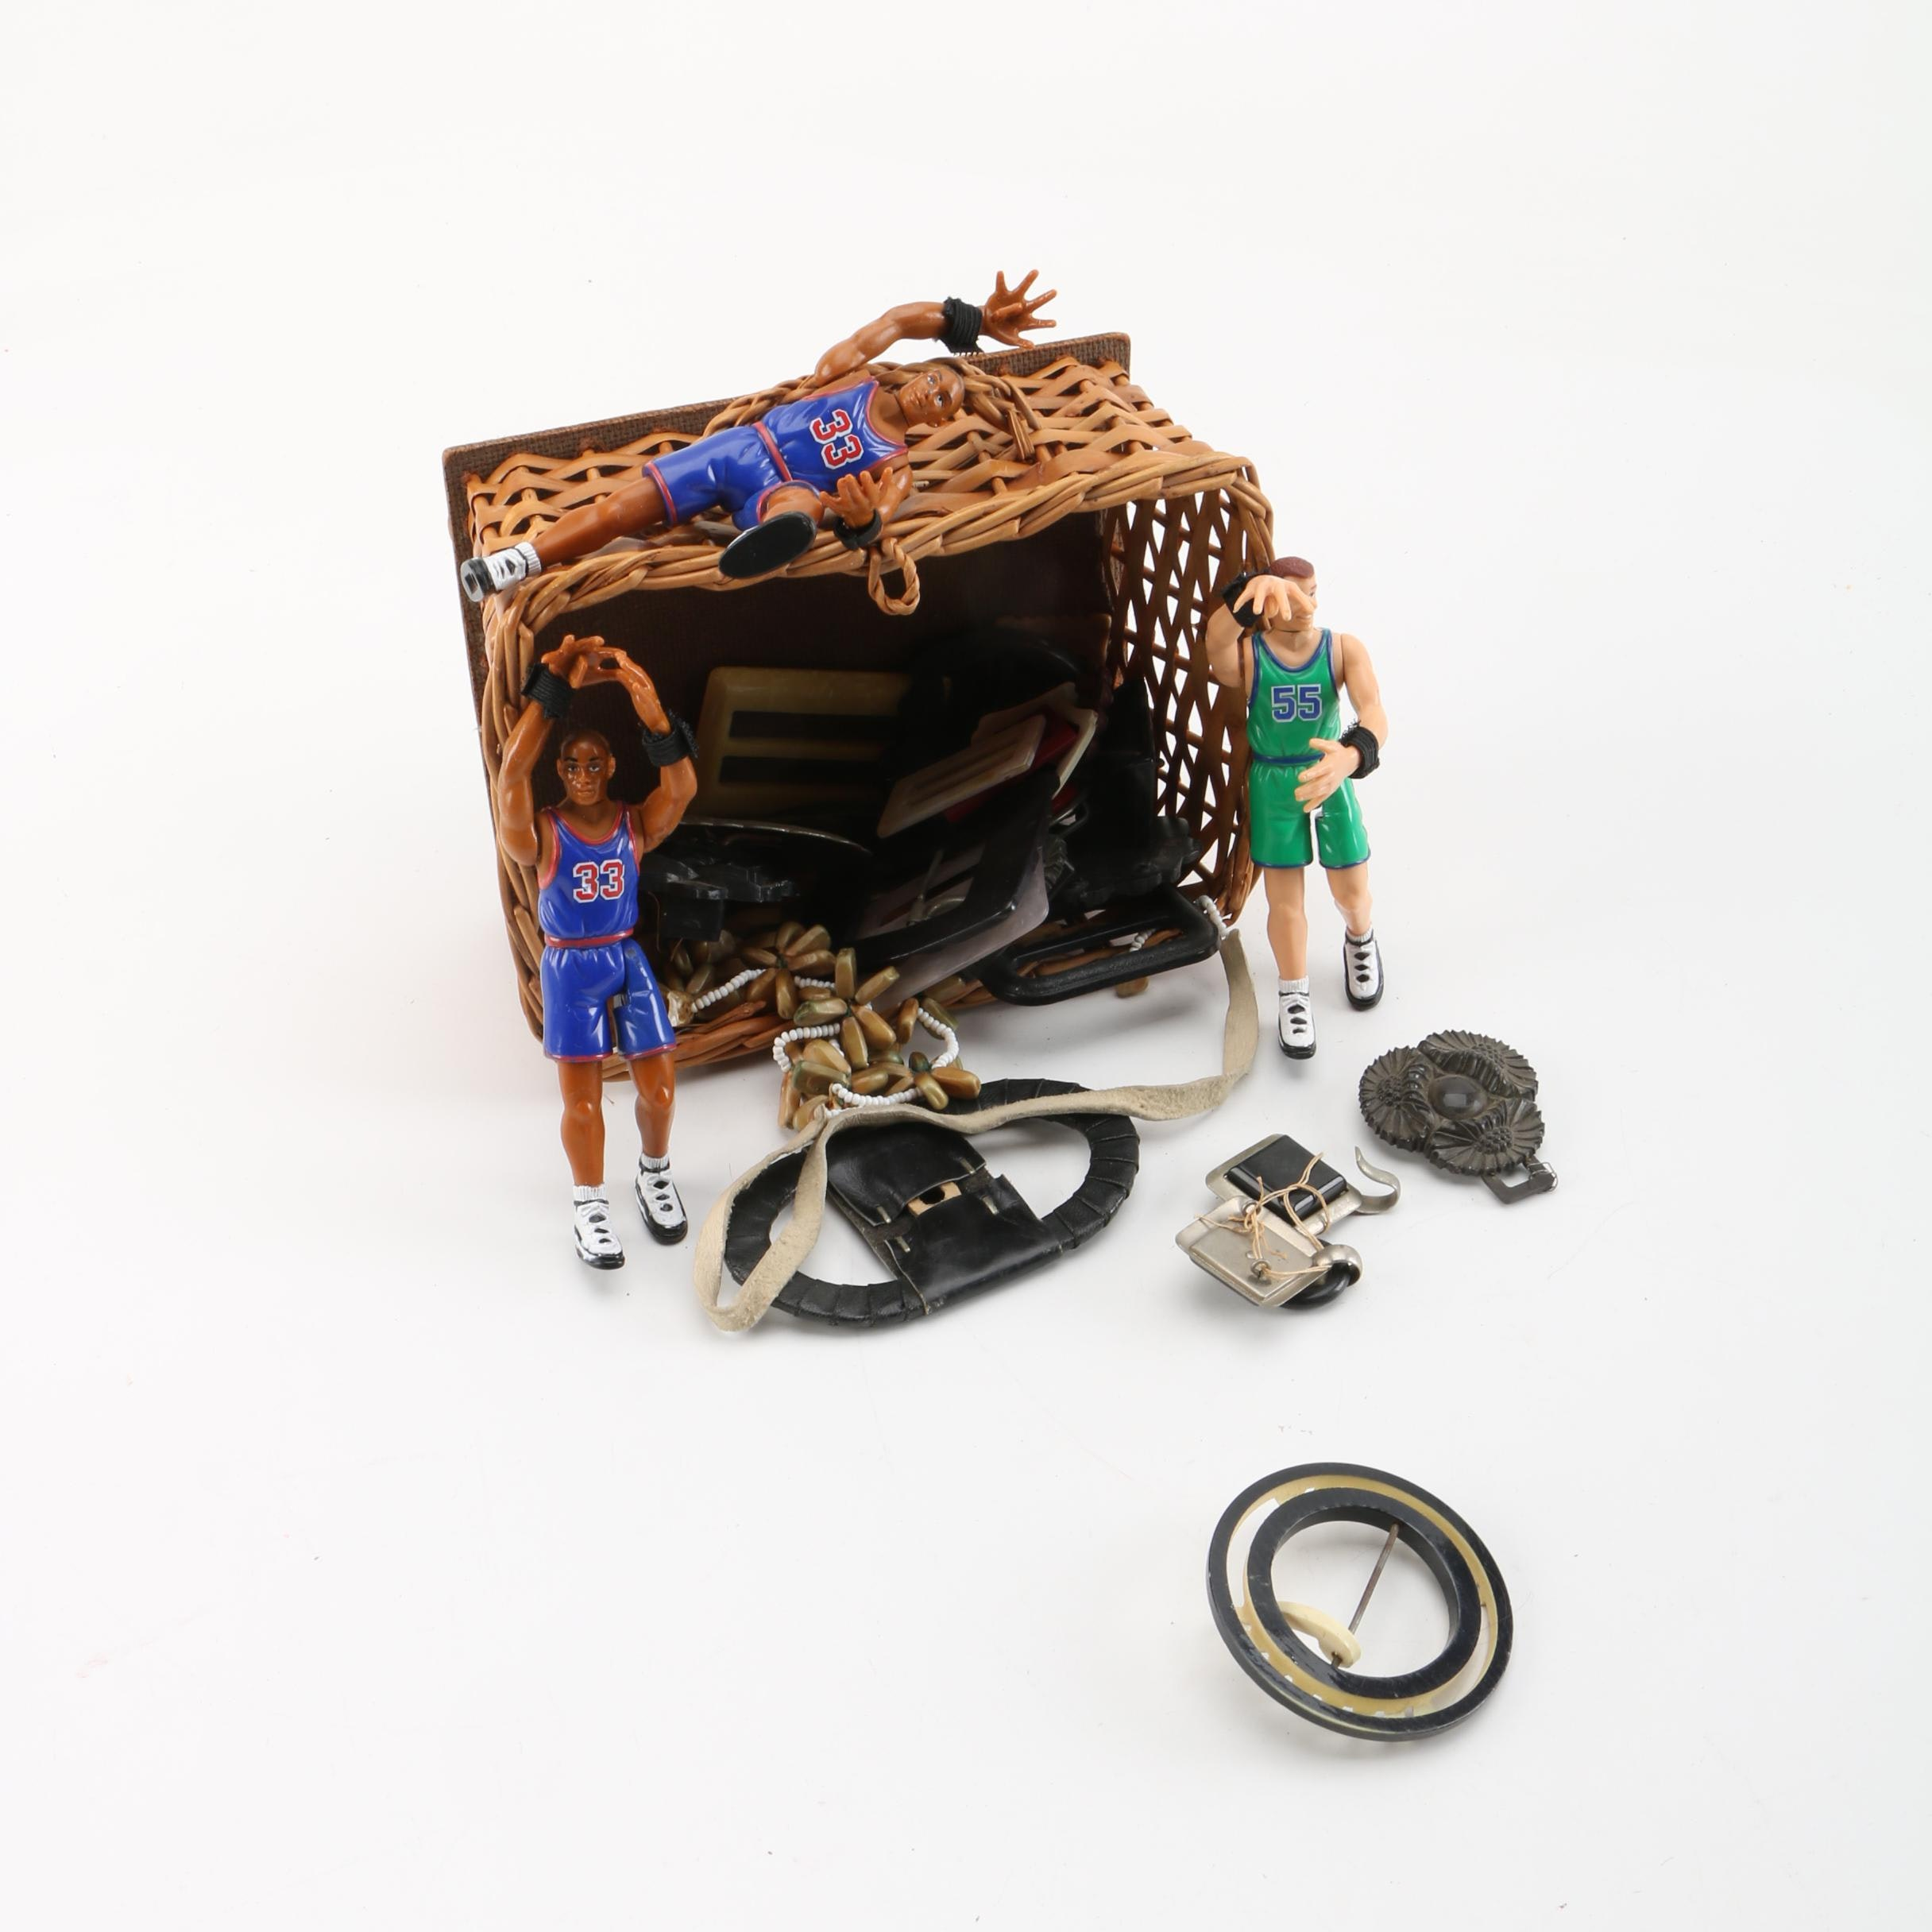 Basket With Vintage Buckles and Toy Basketball Player Figurines